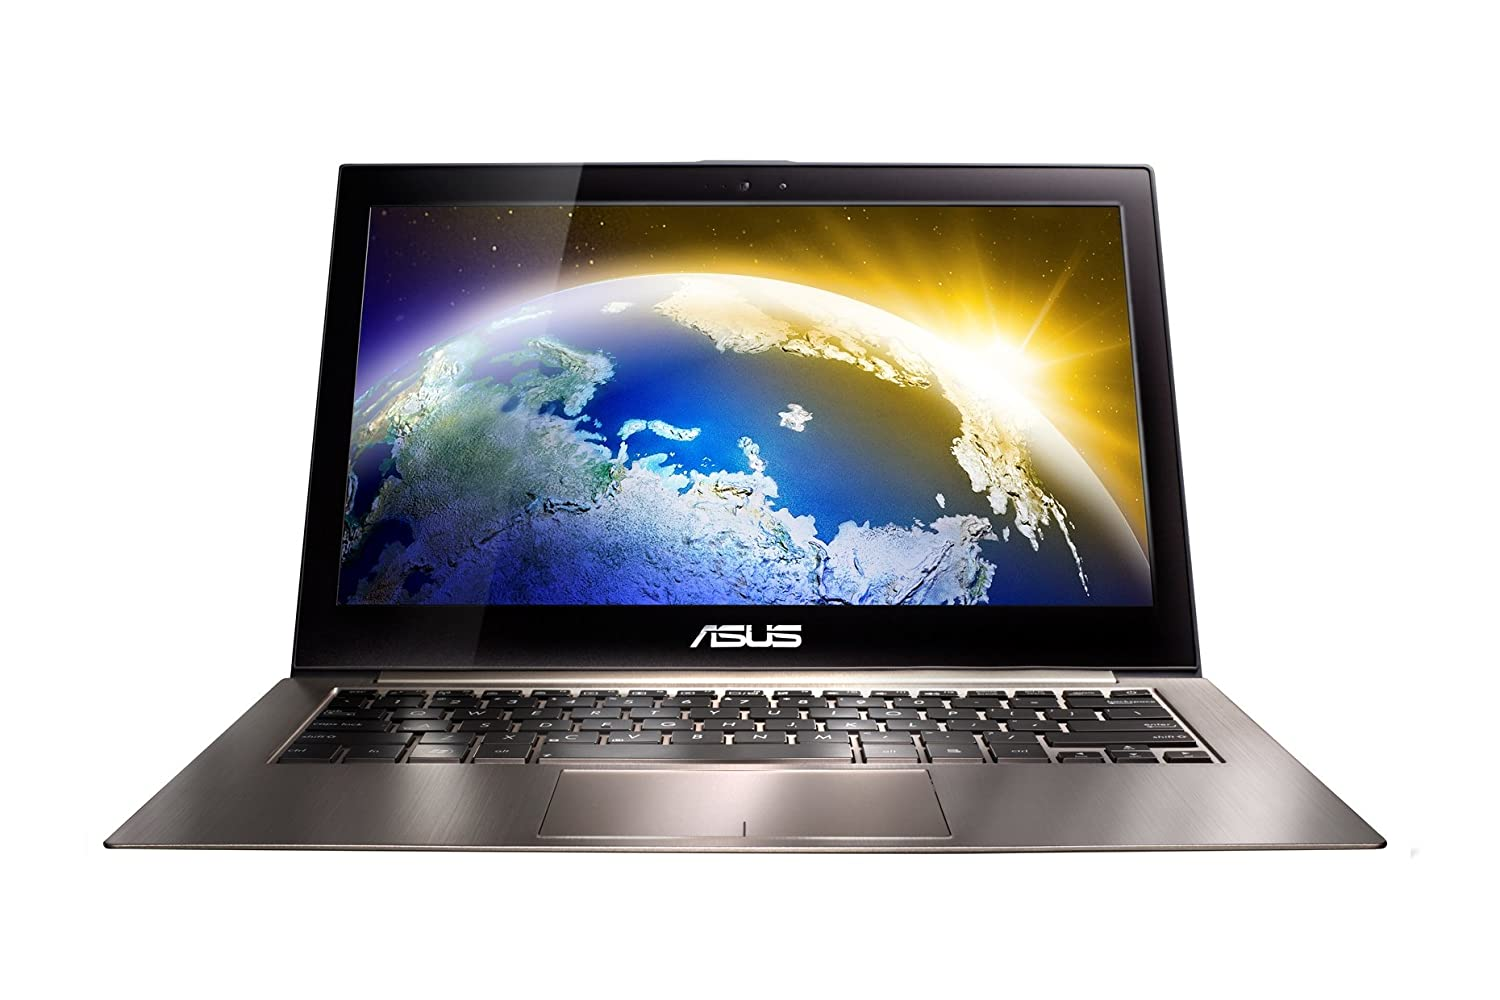 ASUS ZENBOOK PRIME UX31A INTEL RAPID START TECHNOLOGY WINDOWS 8 DRIVERS DOWNLOAD